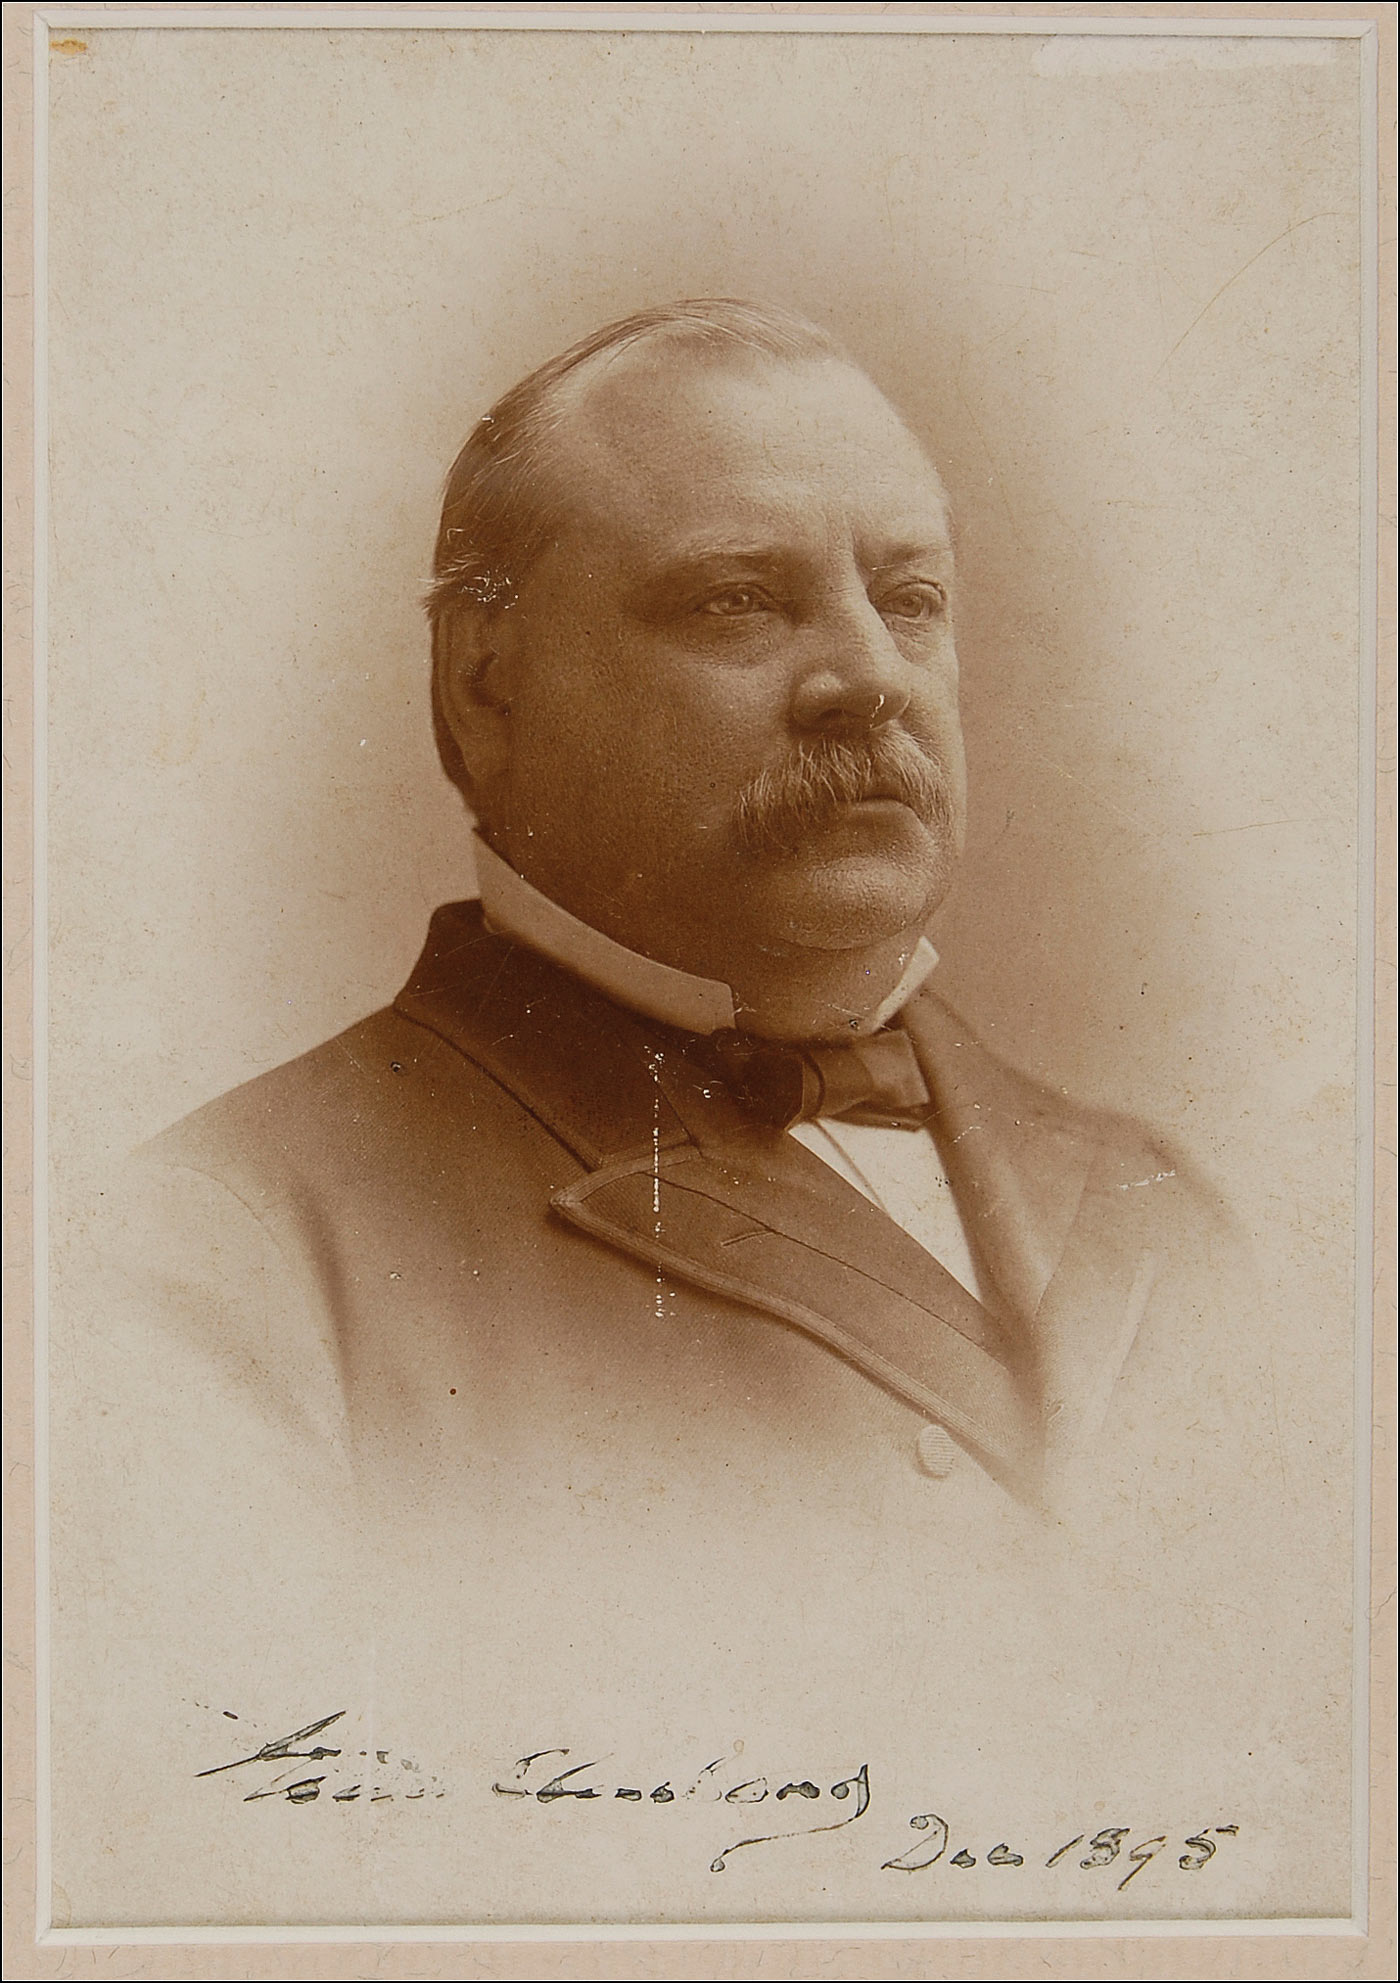 grover cleveland Grover cleveland 22nd and 24th president of the united states (march 4, 1885 to march 3, 1889 and march 4, 1893 to march 3, 1897) nickname: veto mayor veto president.